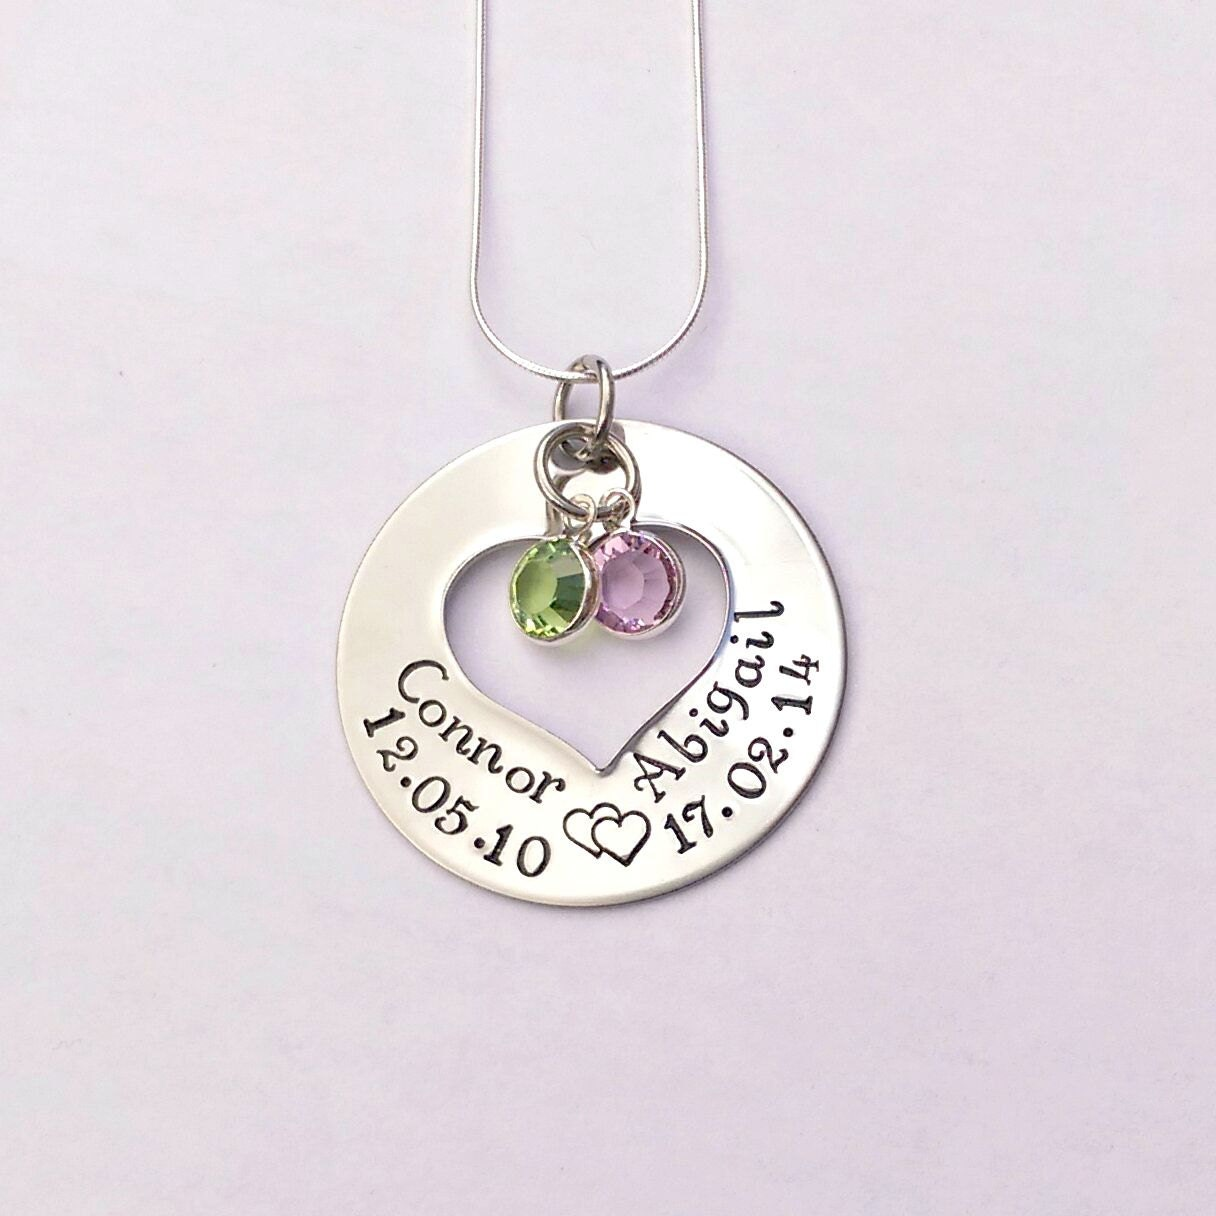 Personalised name necklace - personalized mom necklace - mum jewellery - birthstone jewellery - personalised gift for mum - gift for her